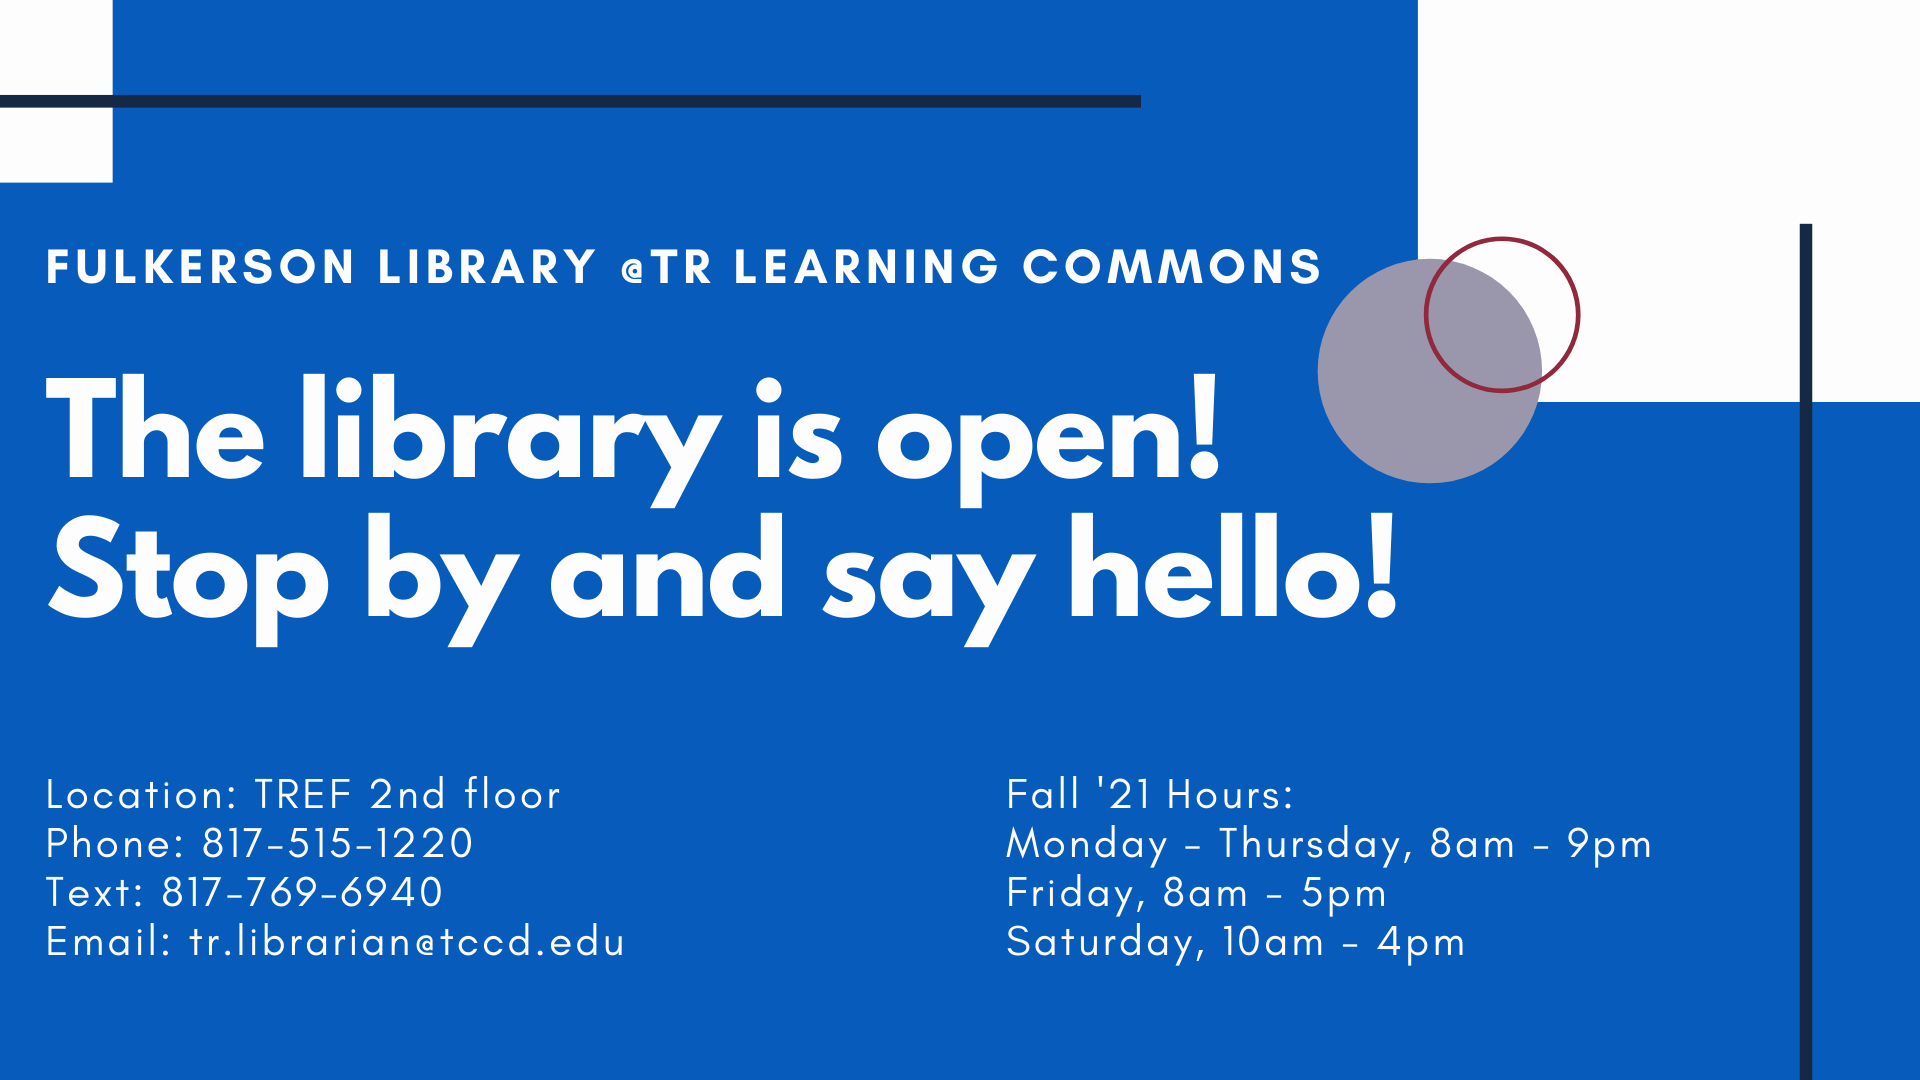 The Library is open. Stop by and say hello.